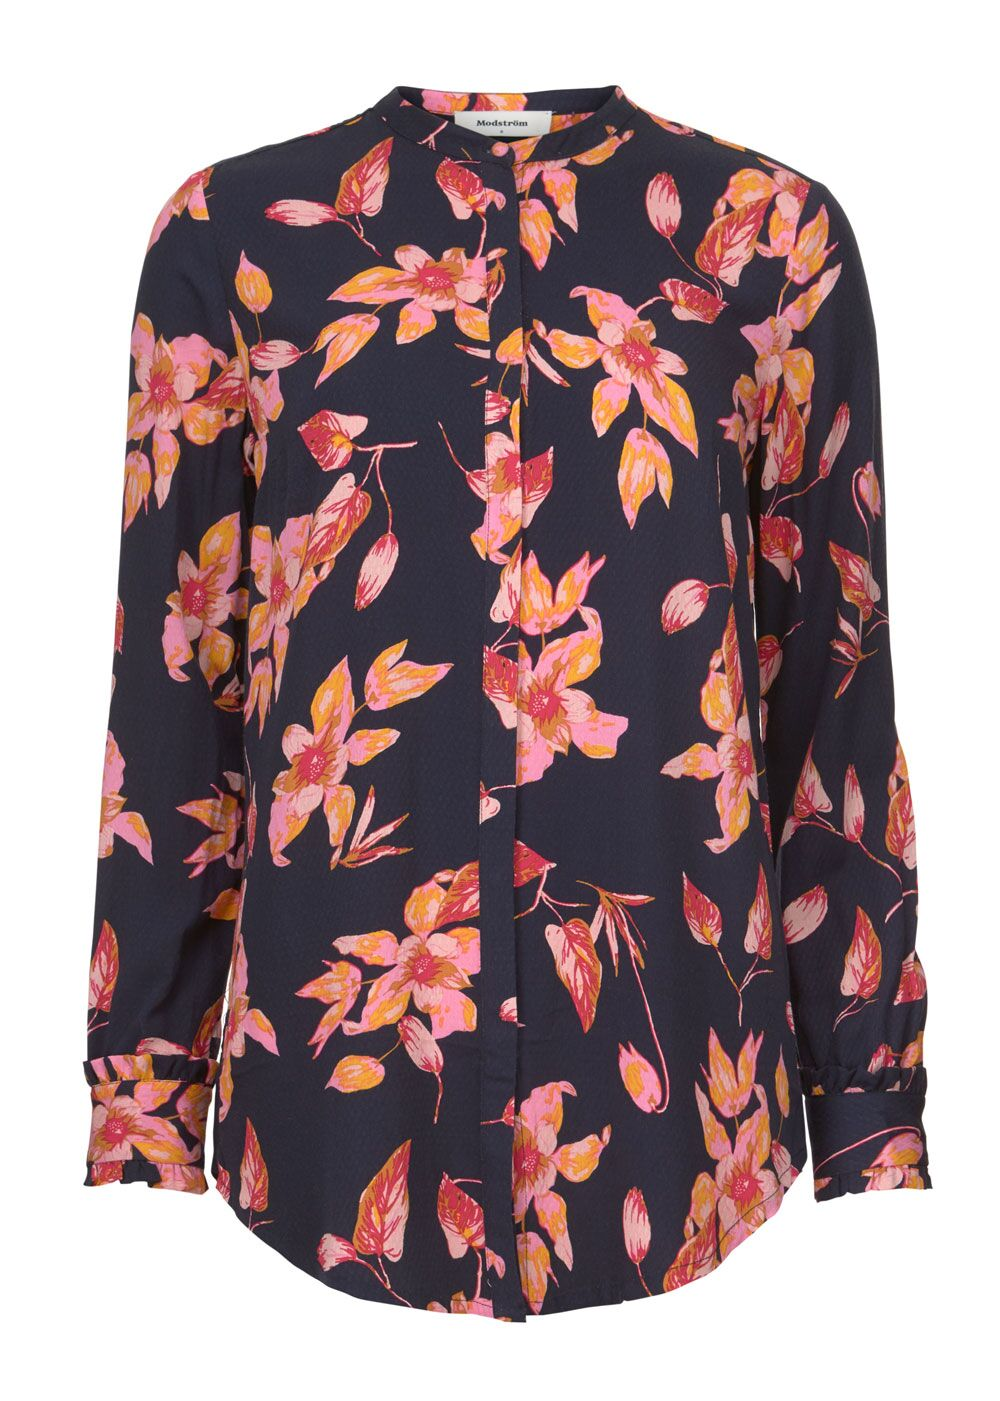 Mercedes Print Shirt - Fantasy Flower